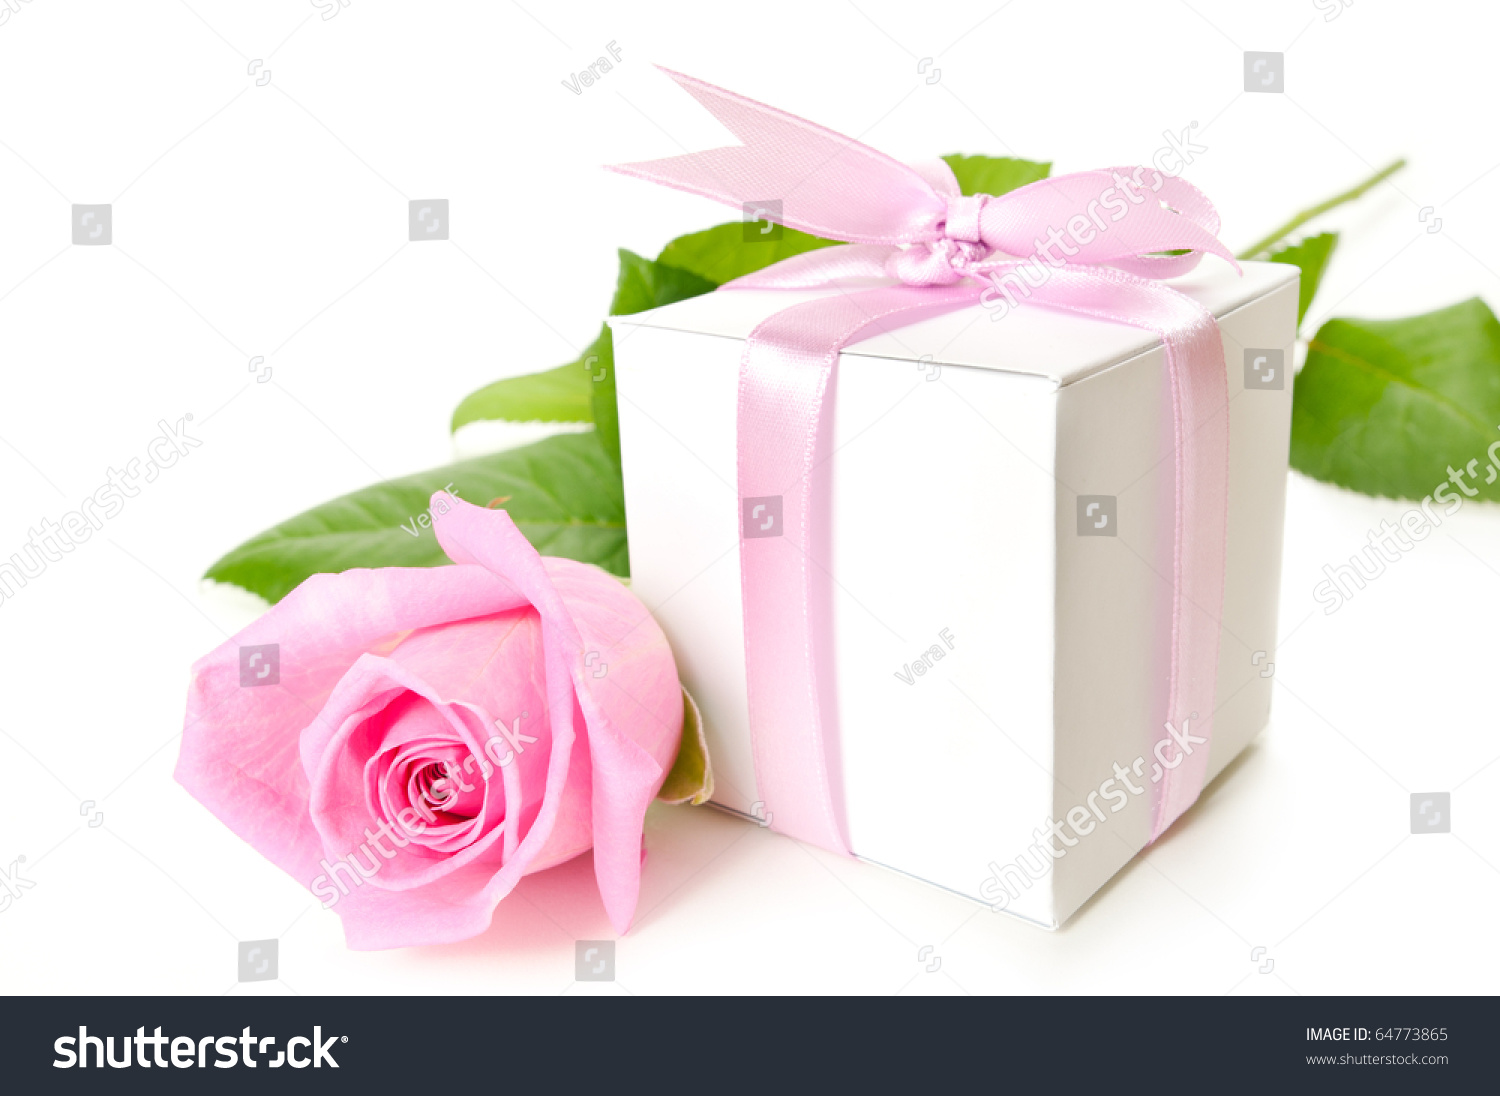 Pink Rose Gift Box On White Stock Photo (Edit Now) 64773865 ...